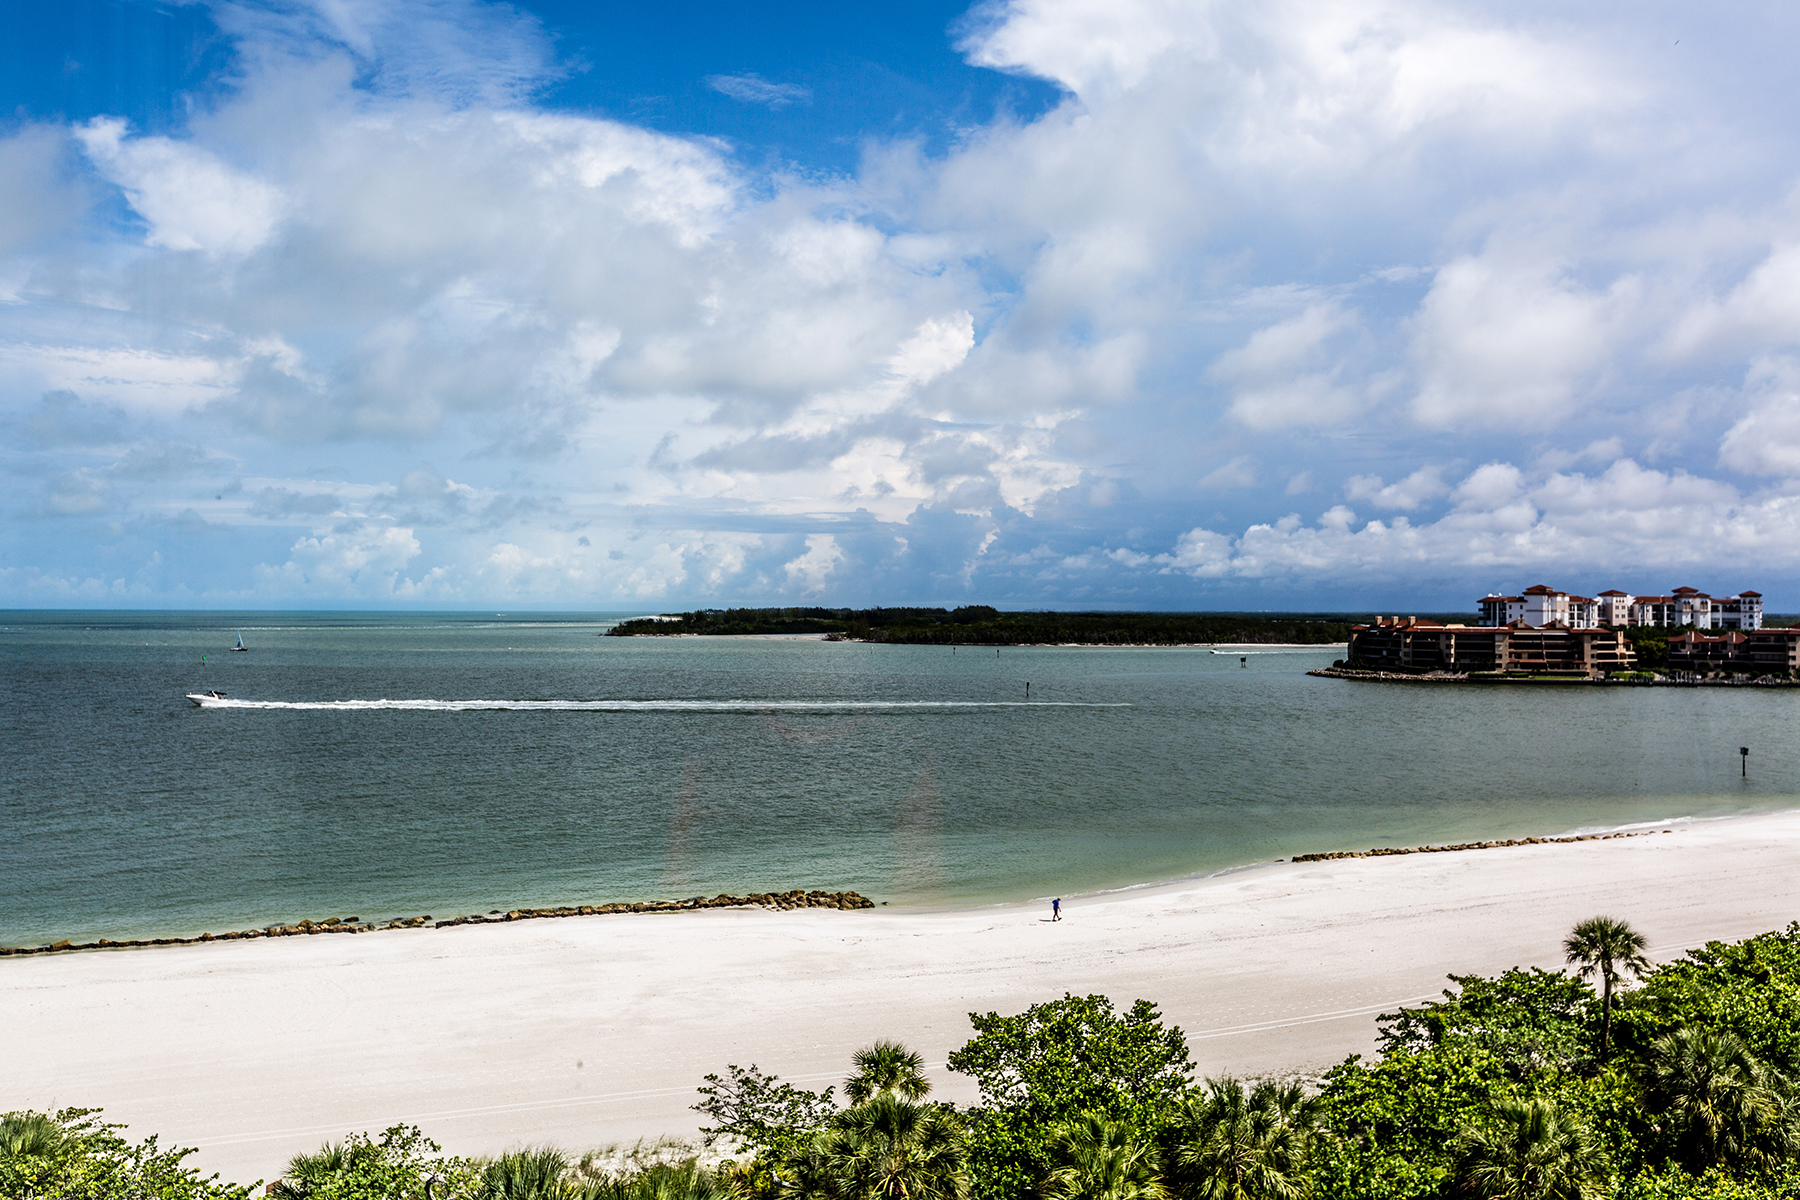 Condominium for Sale at HIDEAWAY BEACH 3000 Royal Marco Way PH-S Marco Island, Florida, 34145 United States